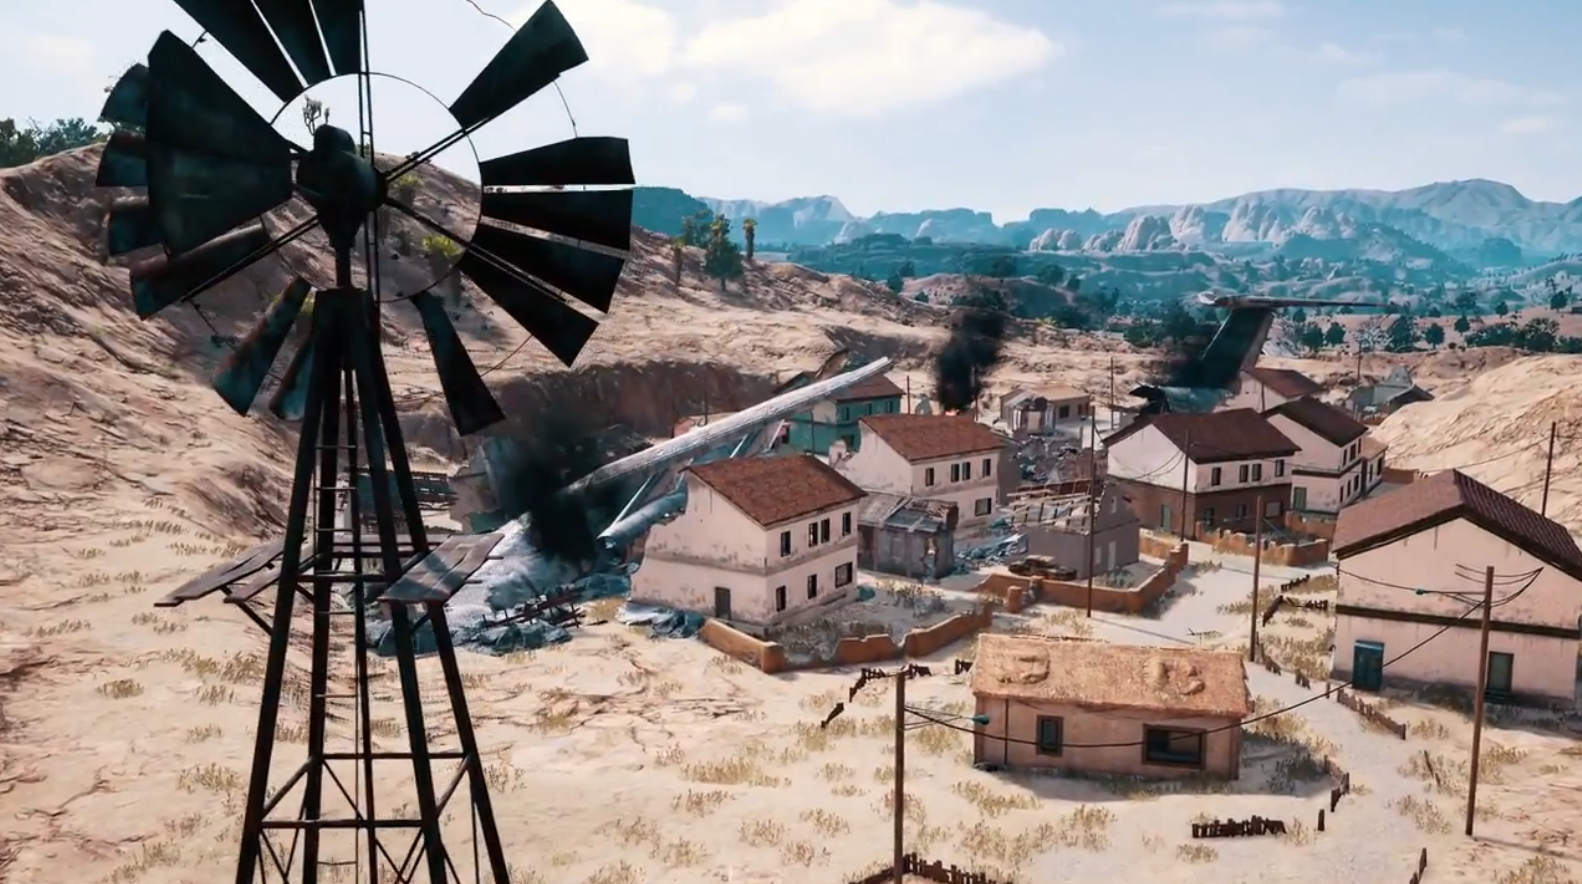 Player Unknown Battlegrounds unveils new map and details